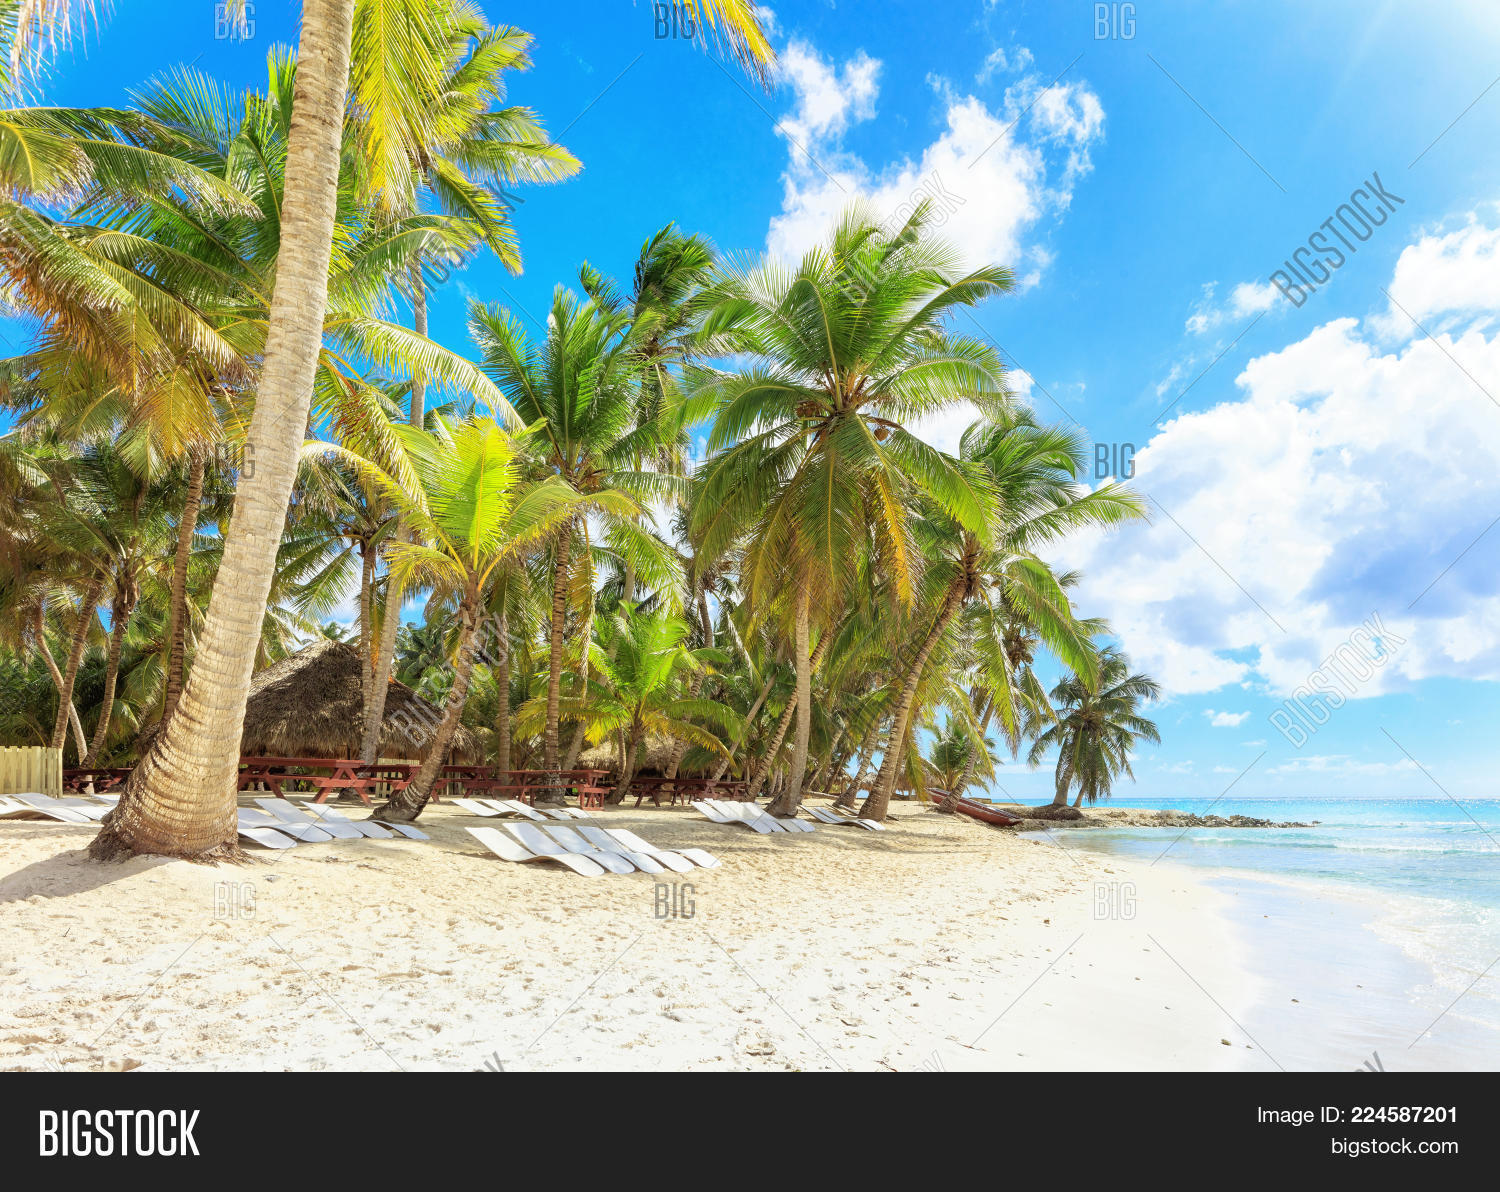 Secluded Beach On Image & Photo (Free Trial) | Bigstock